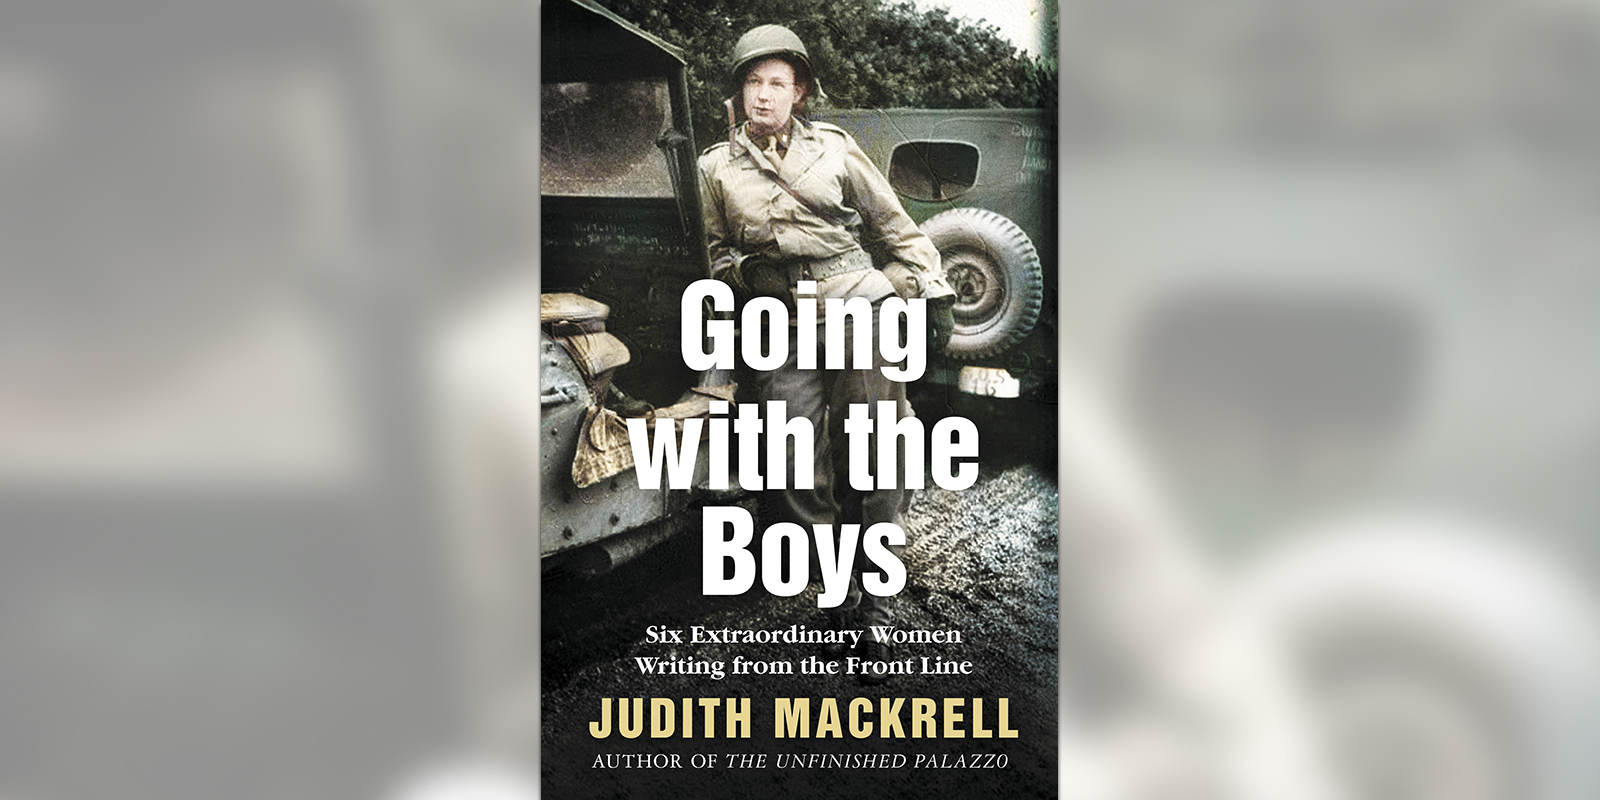 'Going with the Boys' book cover